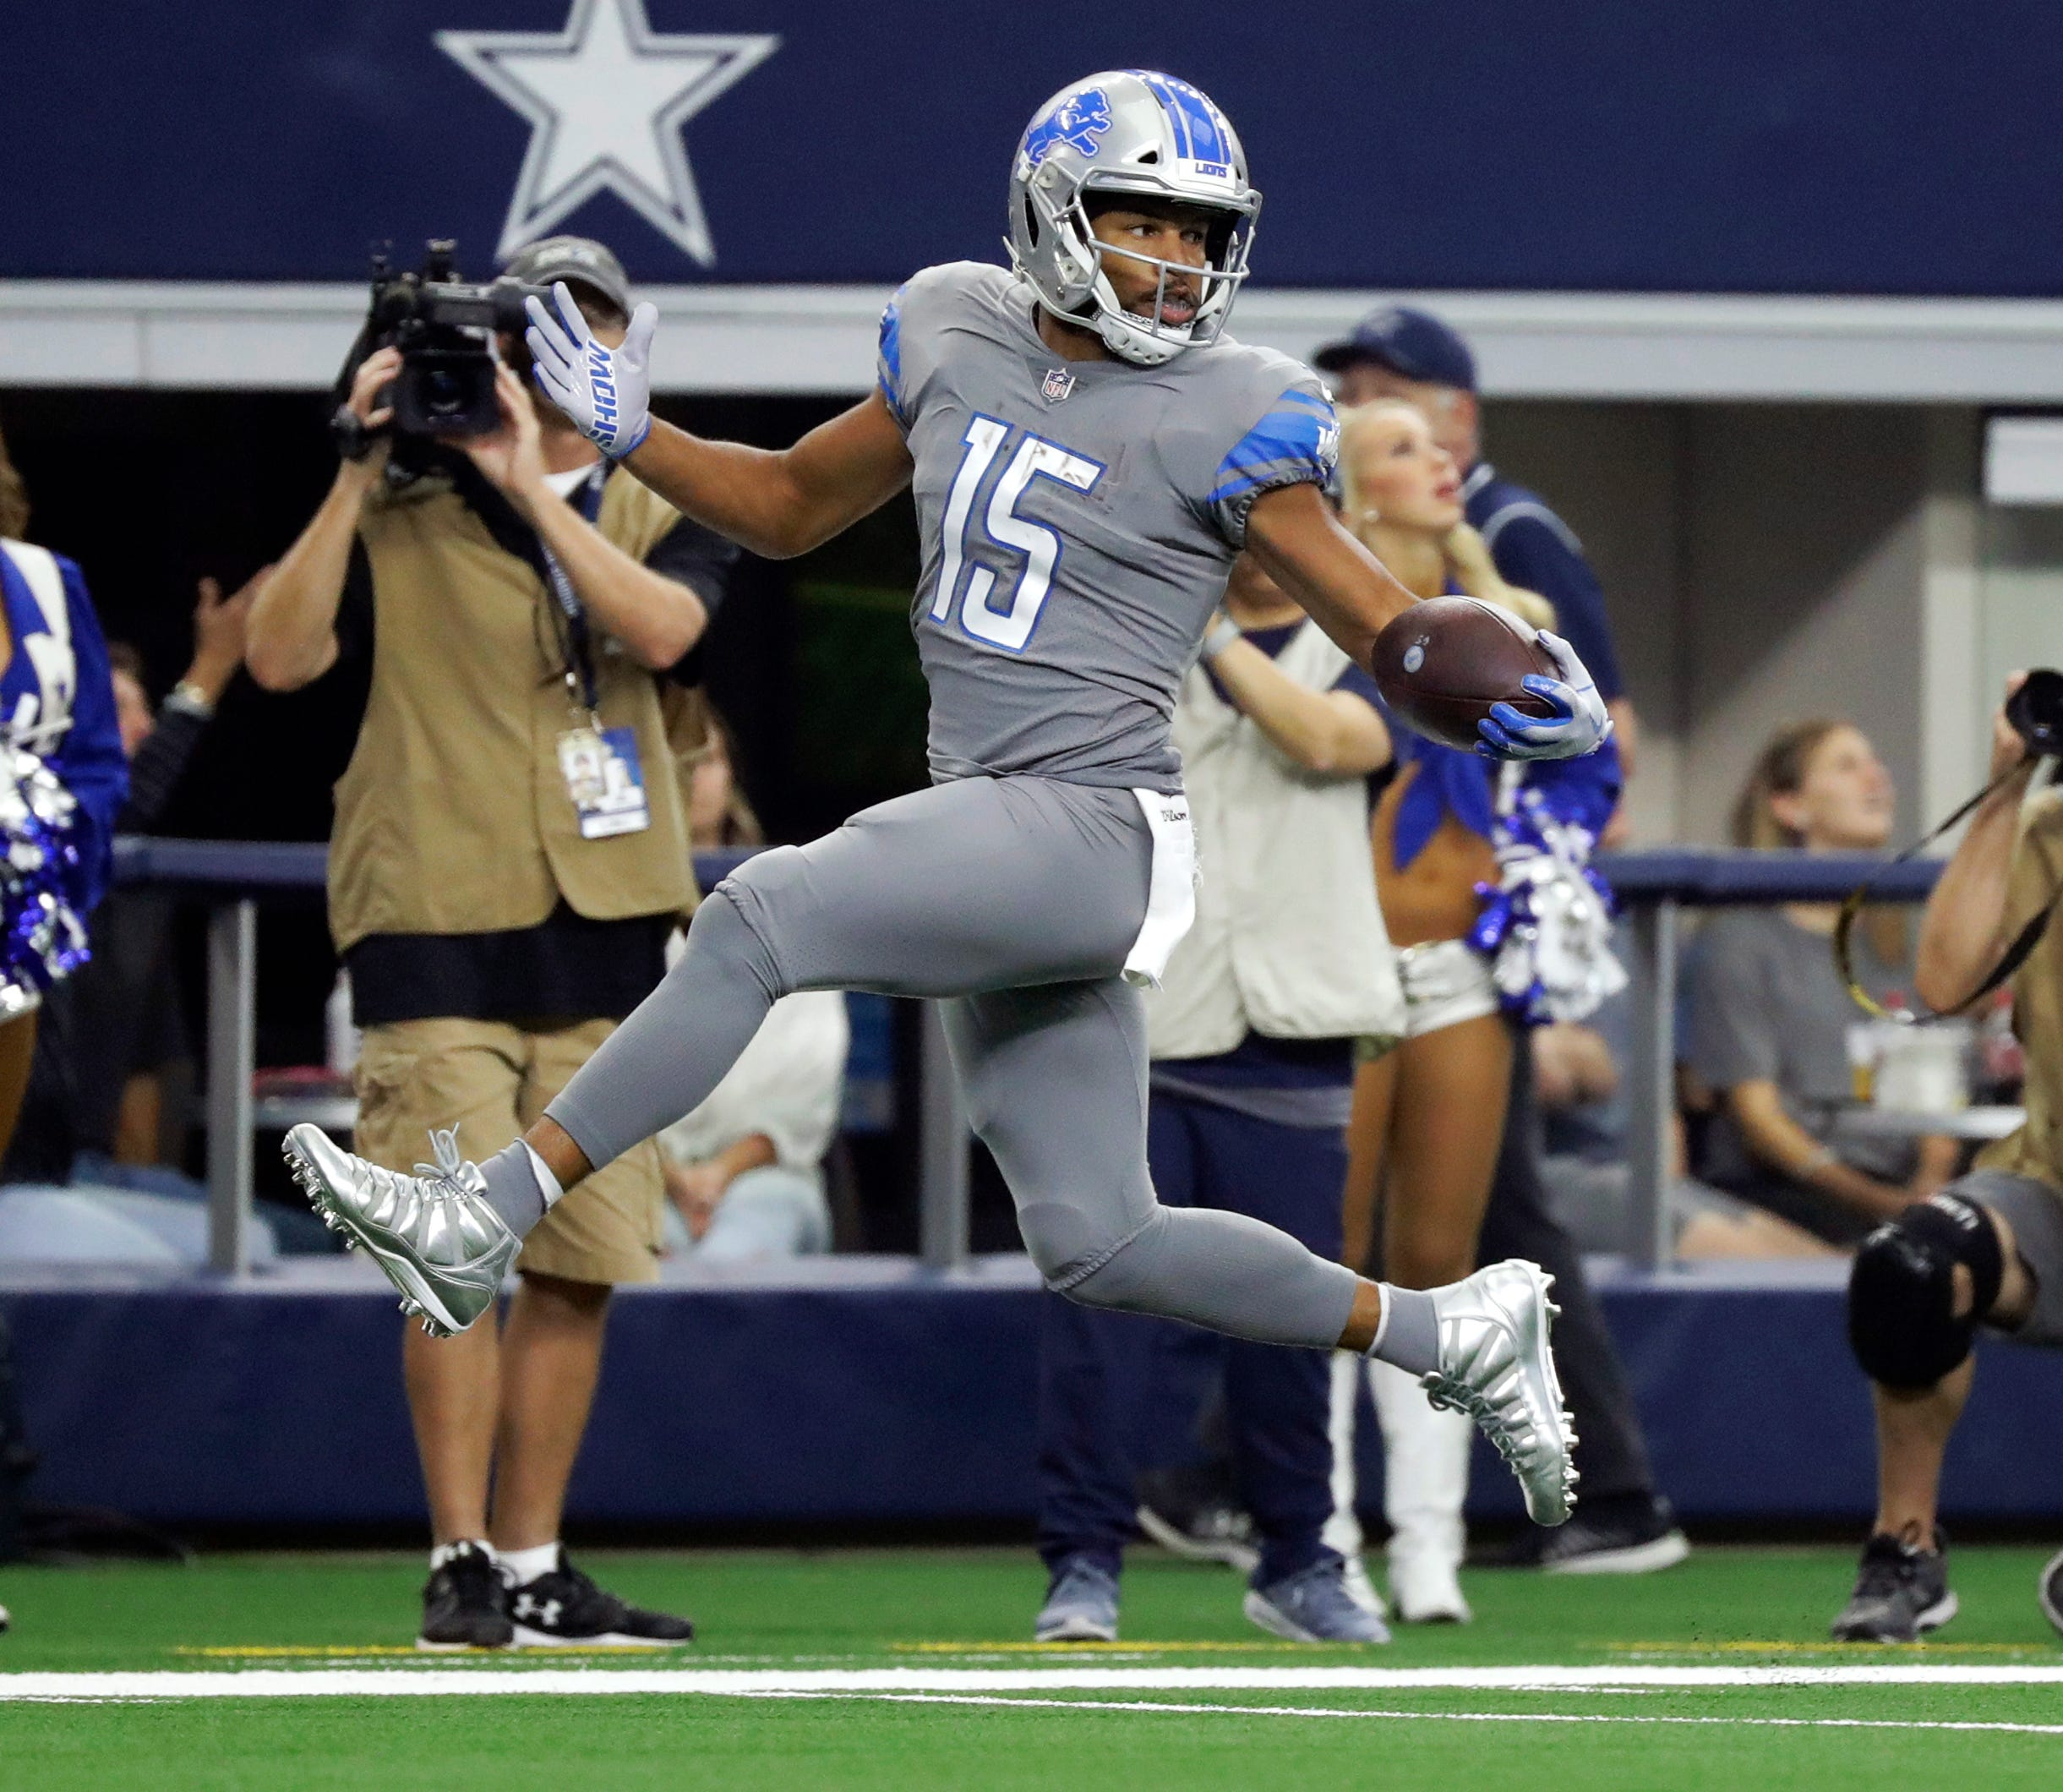 Lions wide receiver Golden Tate looks over his shoulder on a touchdown run on a pass from Matthew Stafford in the first half in Arlington, Texas, Sunday, Sept. 30, 2018.